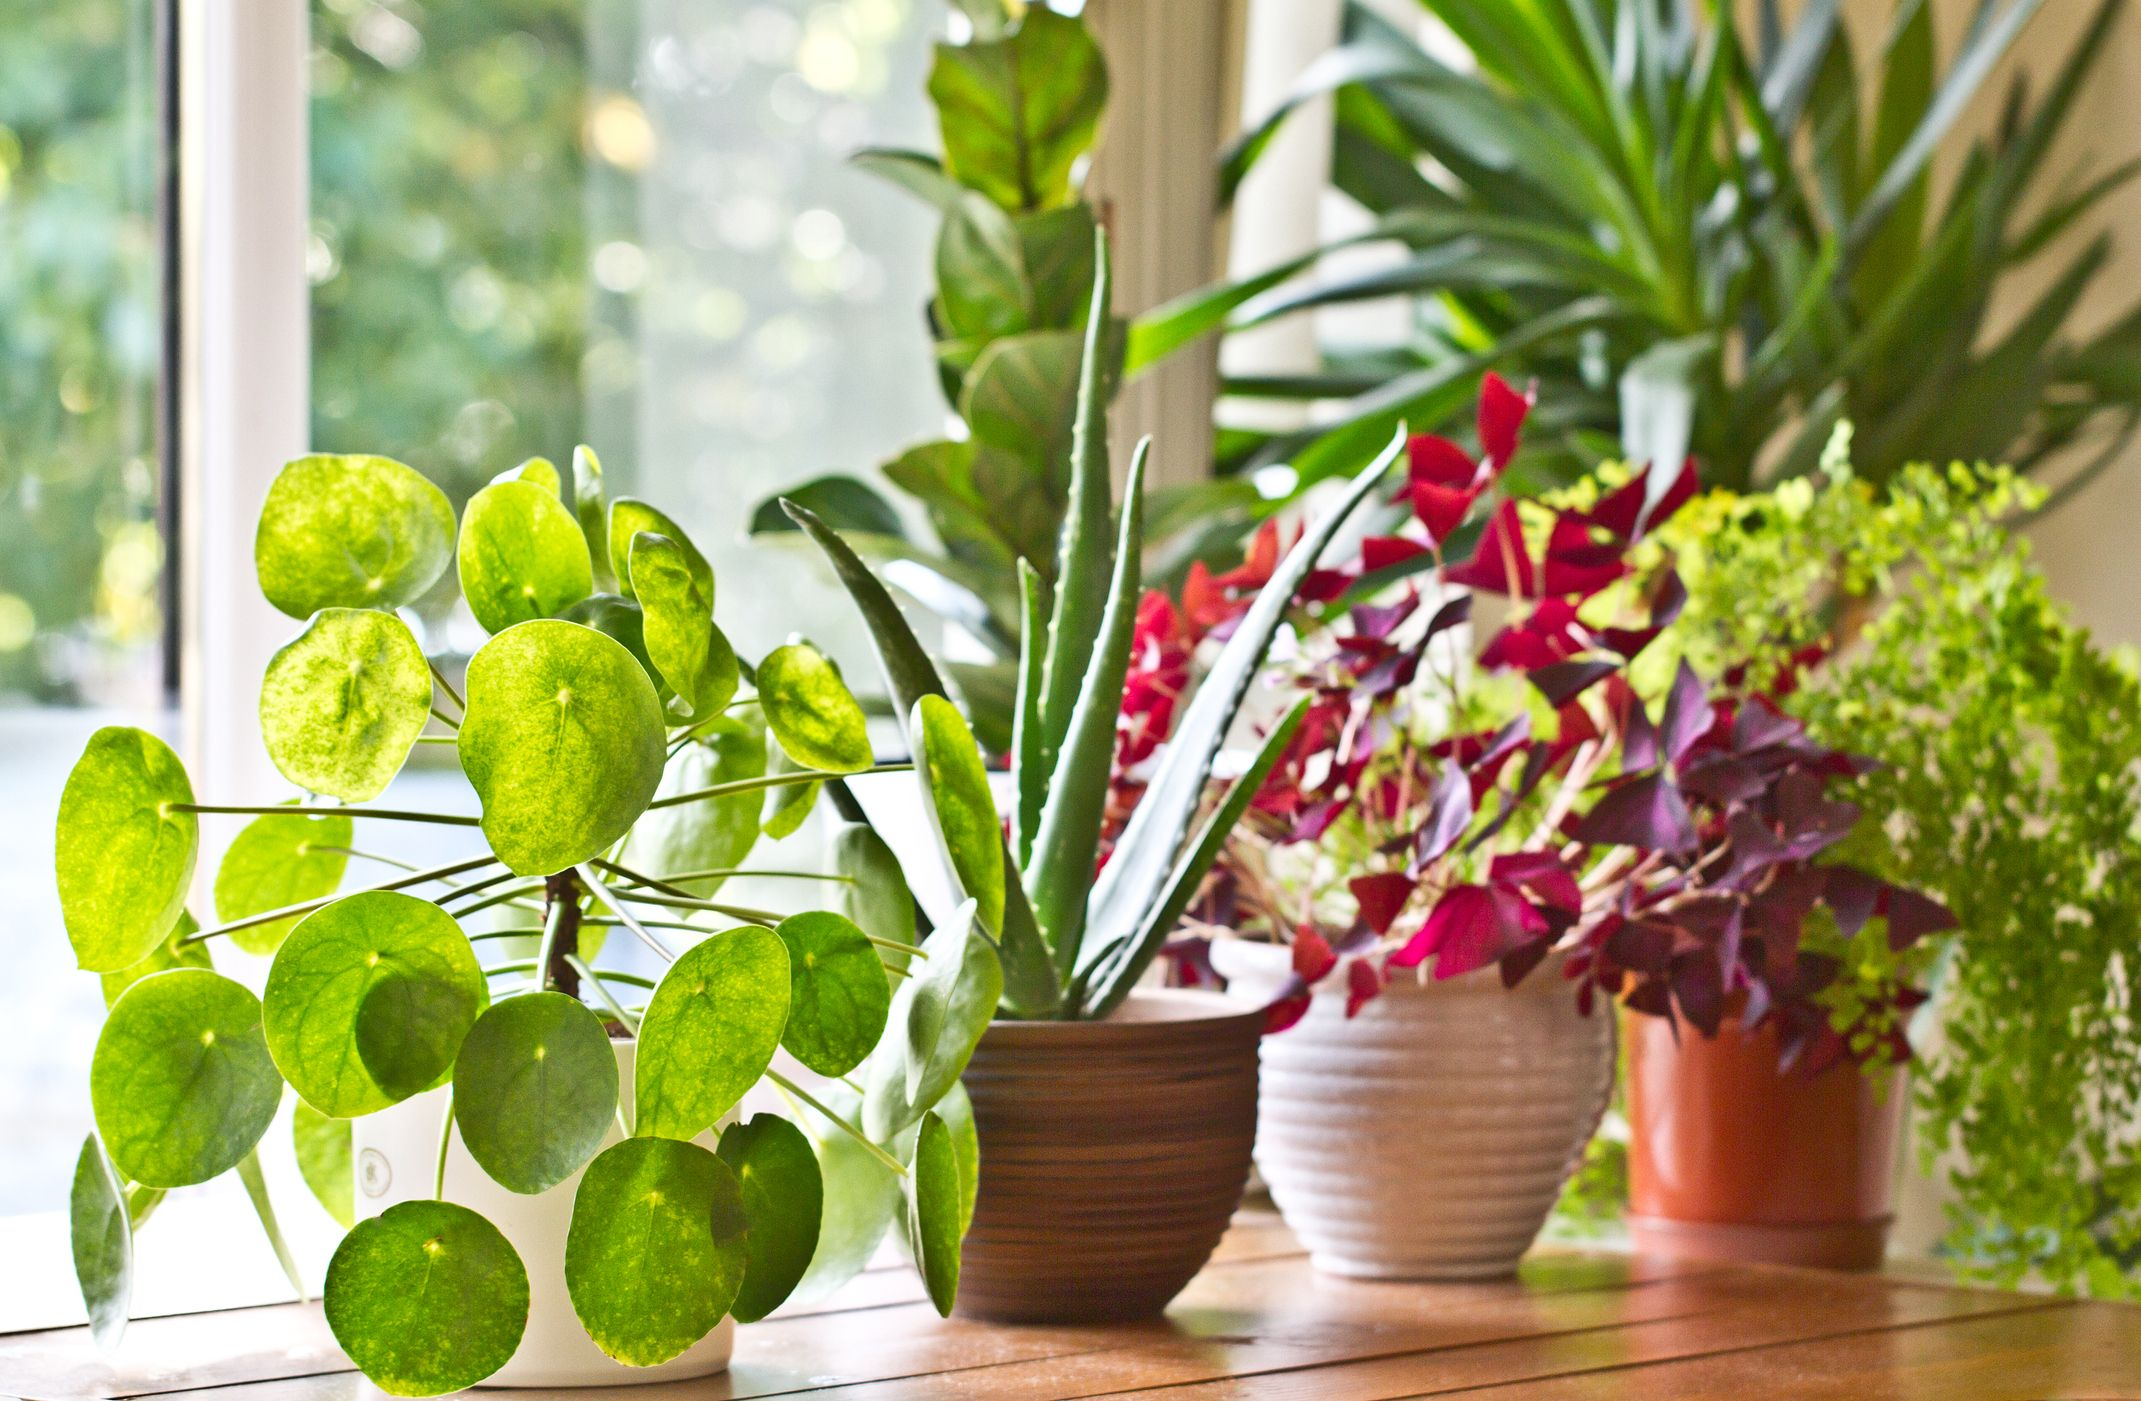 pot-plants-display-on-the-window-royalty-free-image-839958870-1546891041.jpg (2141×1401)